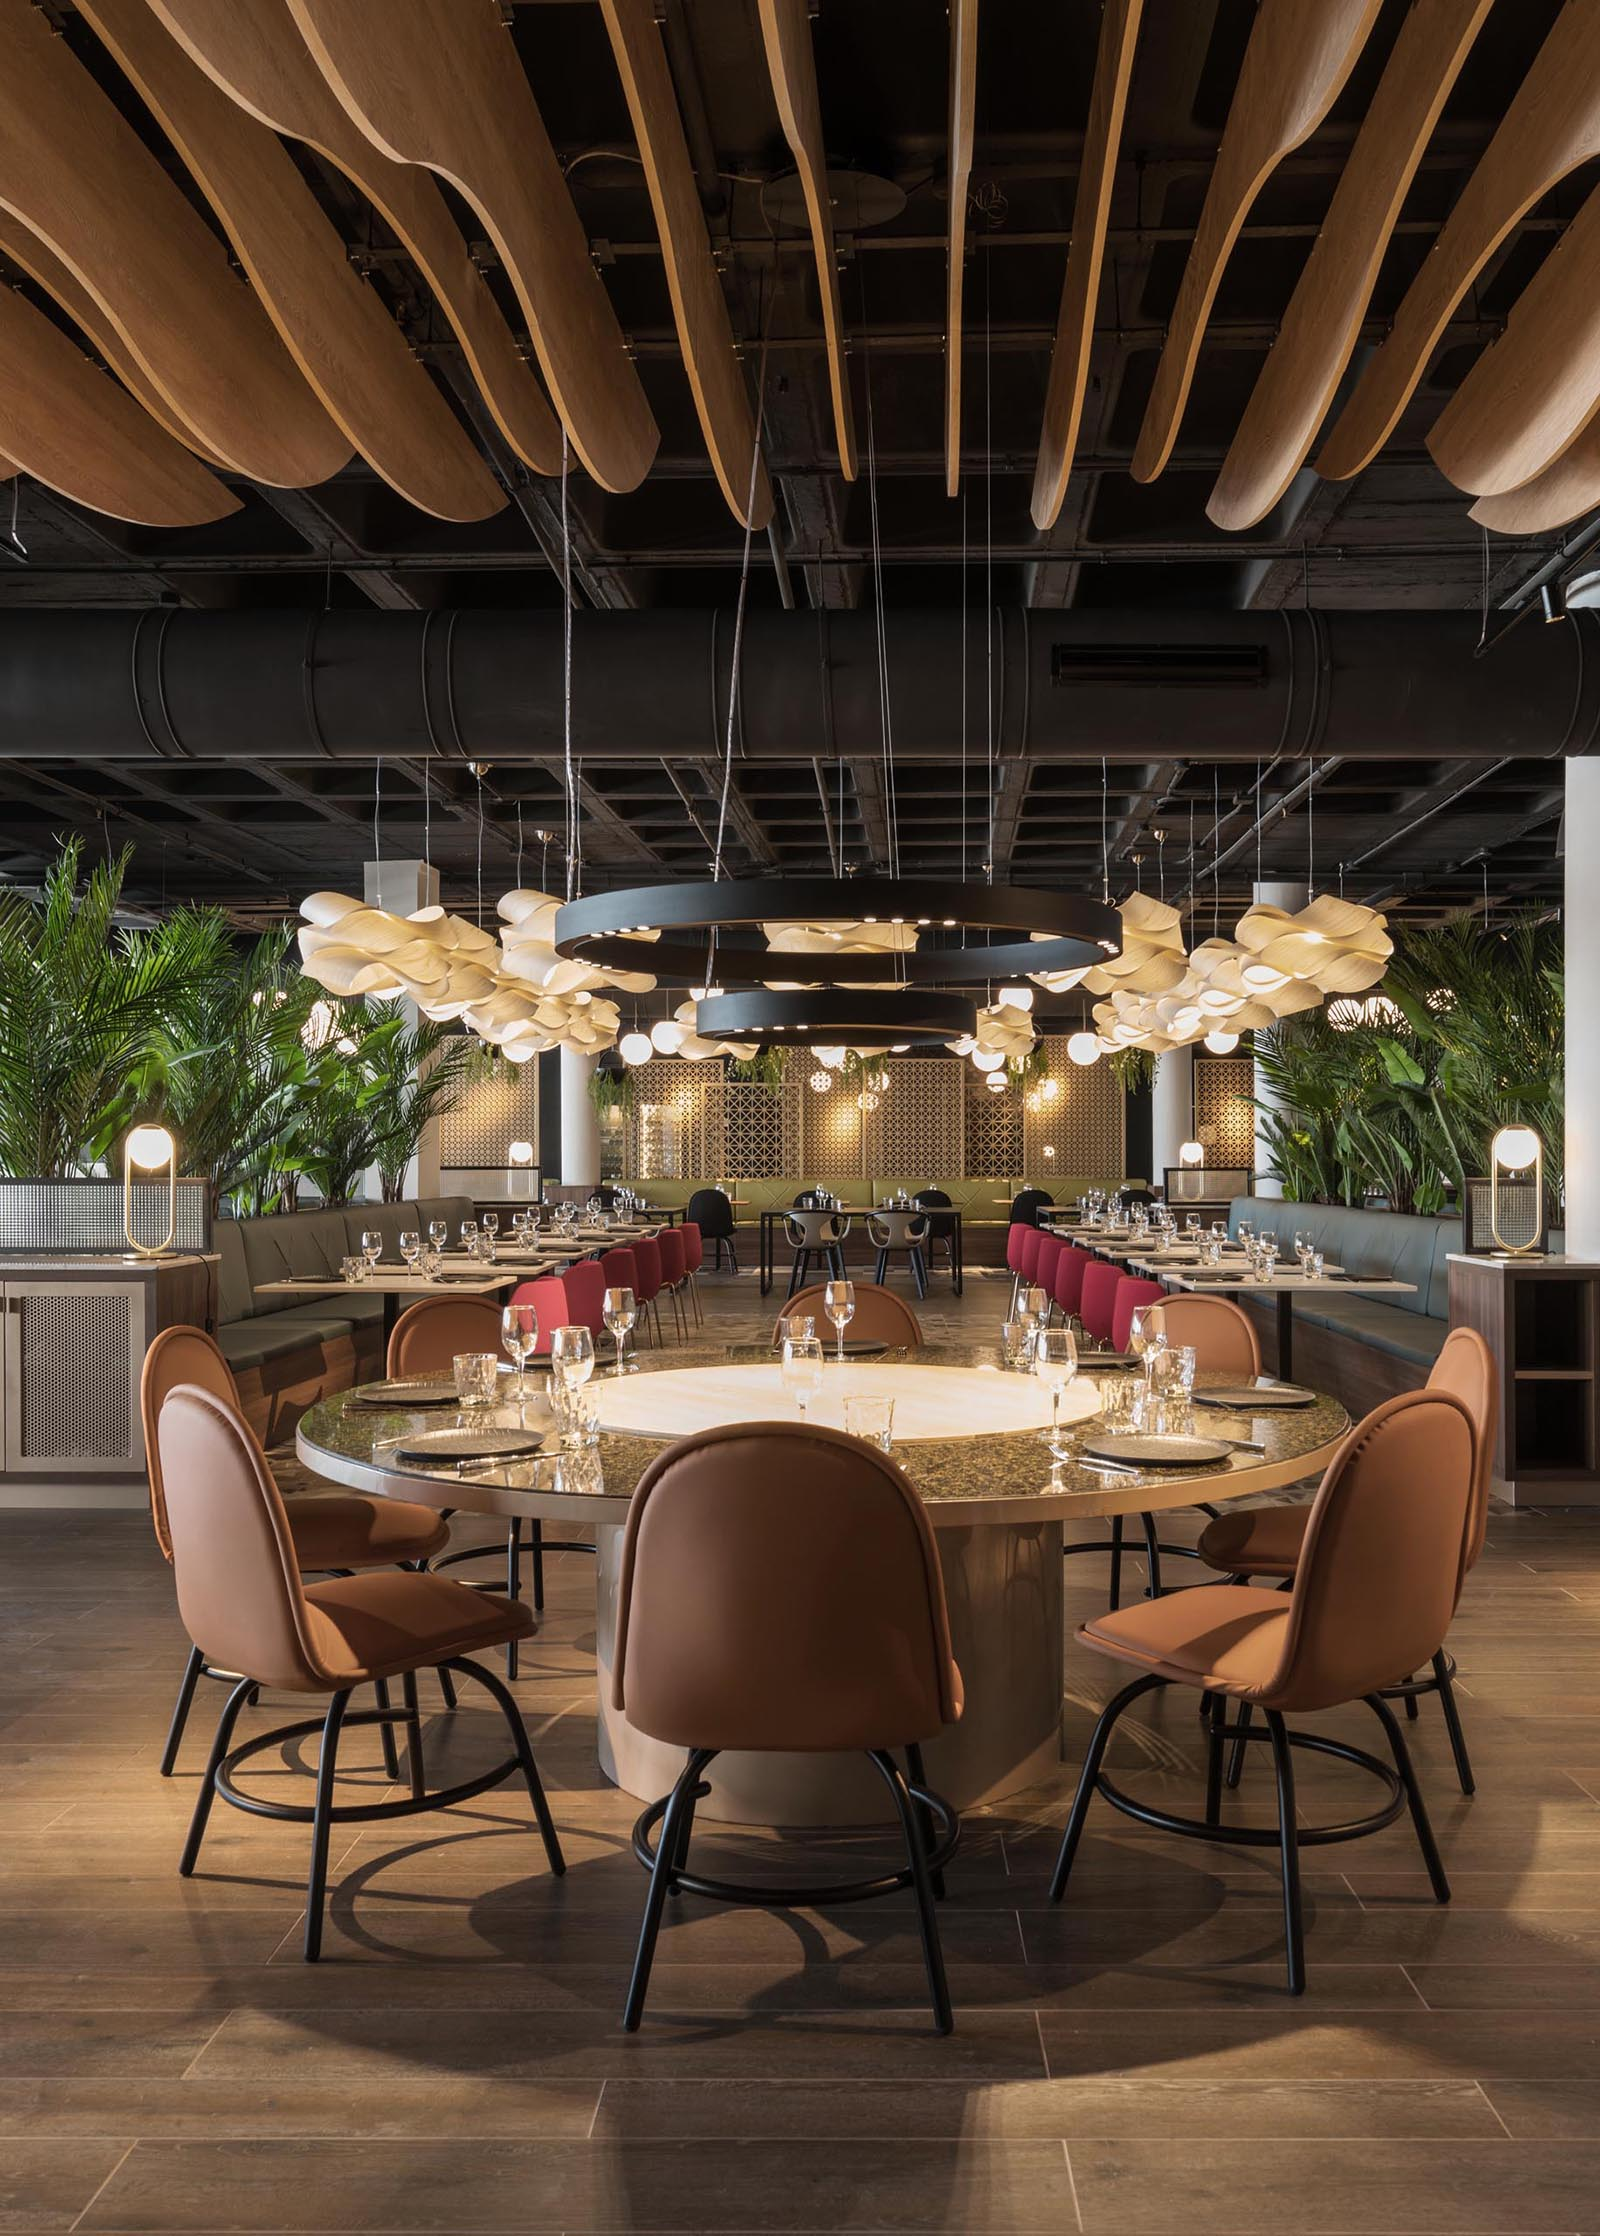 A modern restaurant with sculptural wood elements, a crown of lights, and multiple seating areas.